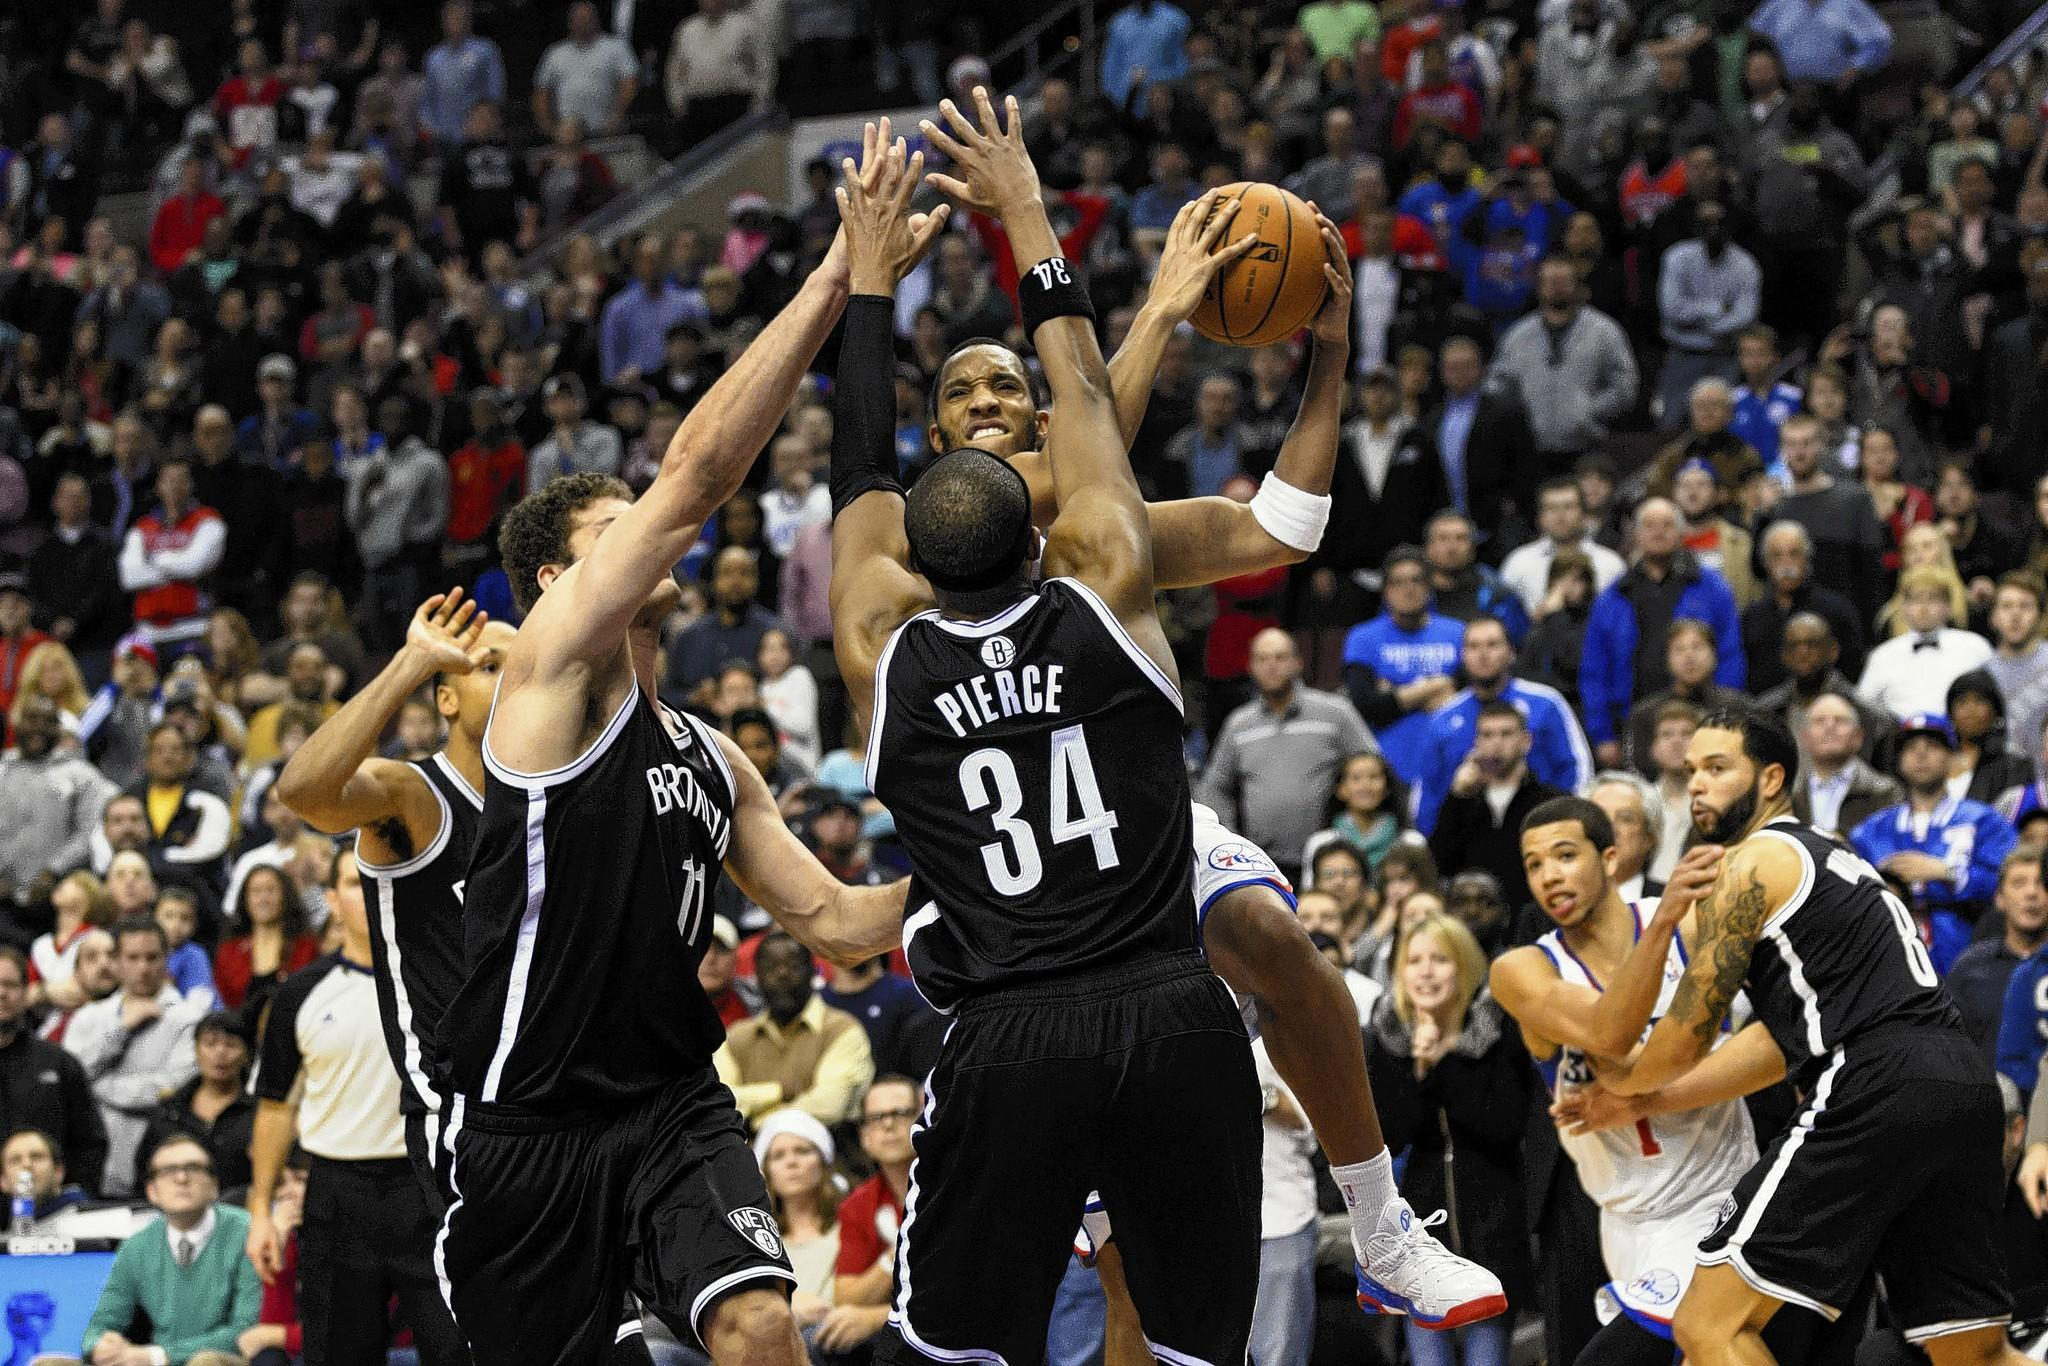 Dec 20, 2013; Philadelphia, PA, USA; Philadelphia 76ers guard Evan Turner (12) puts up the game winning shot in overtime as Brooklyn Nets center Brook Lopez (11) and forward Paul Pierce (34) defend at the Wells Fargo Center.